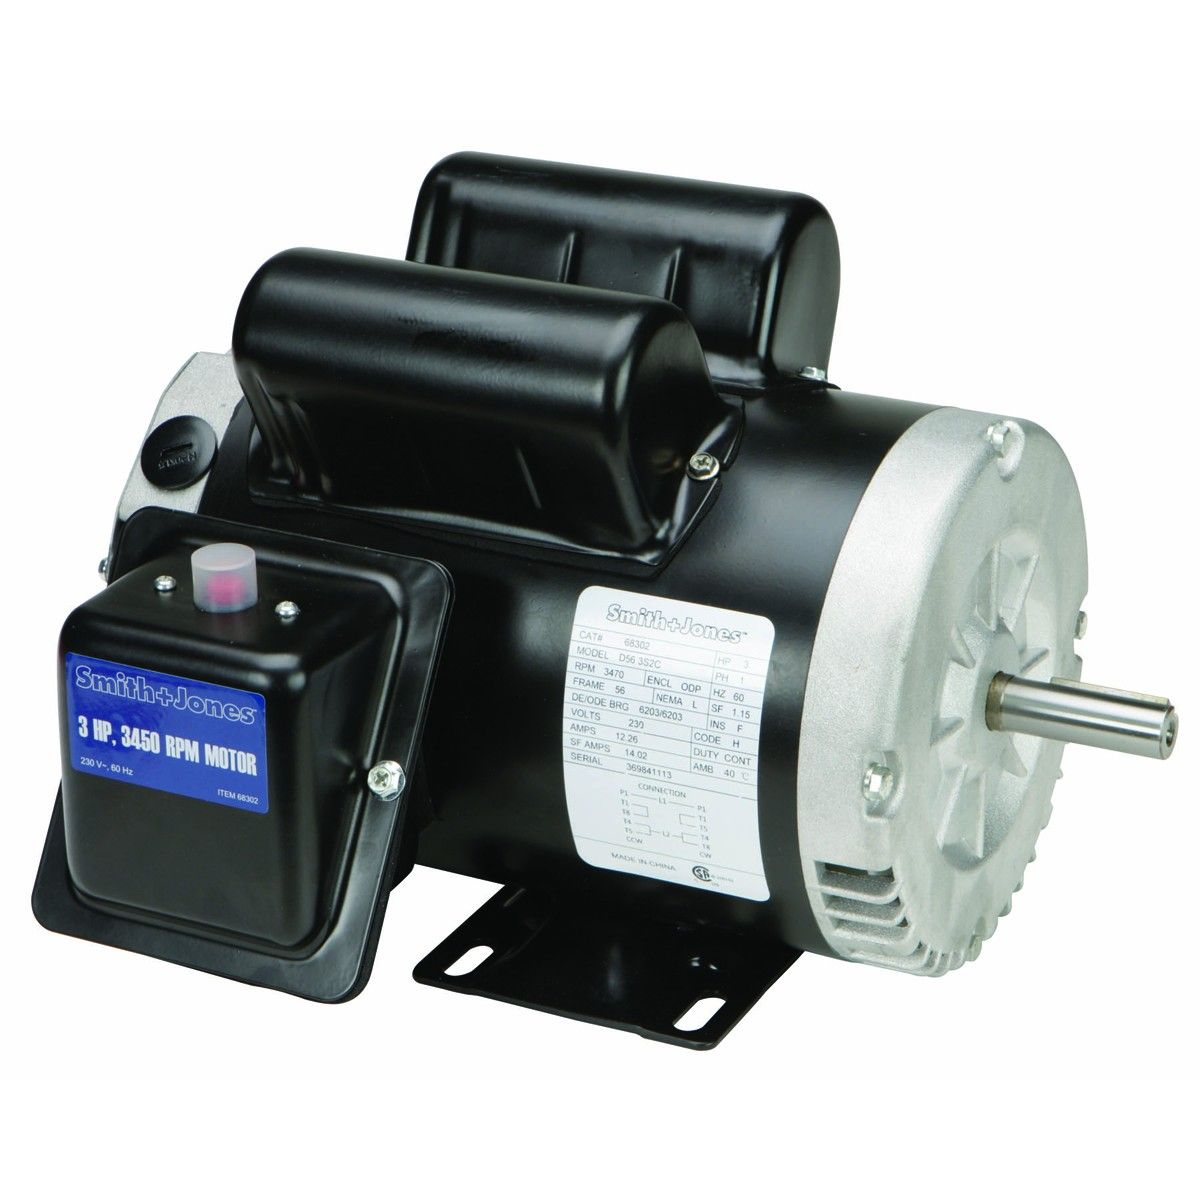 3 HP Compressor Duty Motor Electric motor, Industrial